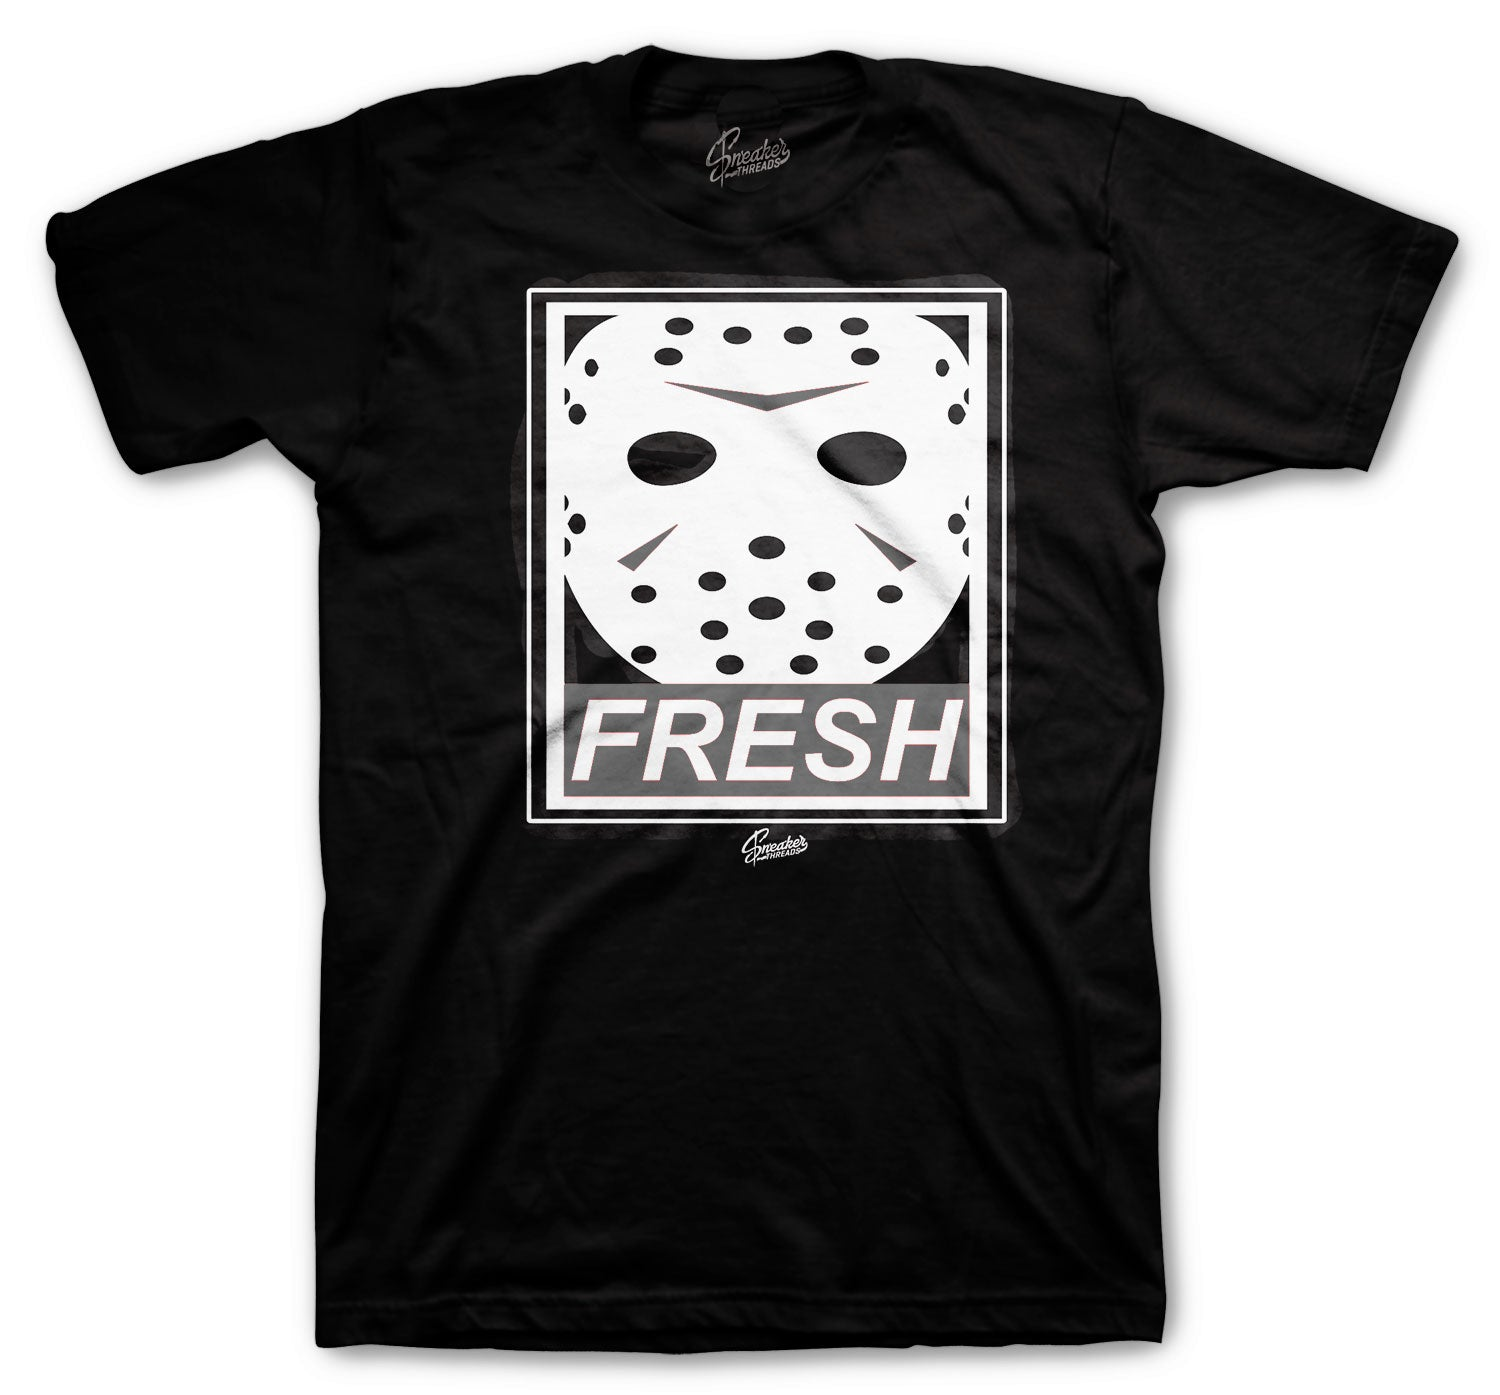 Foamposite Anthracite Fresh 2 Death Shirt